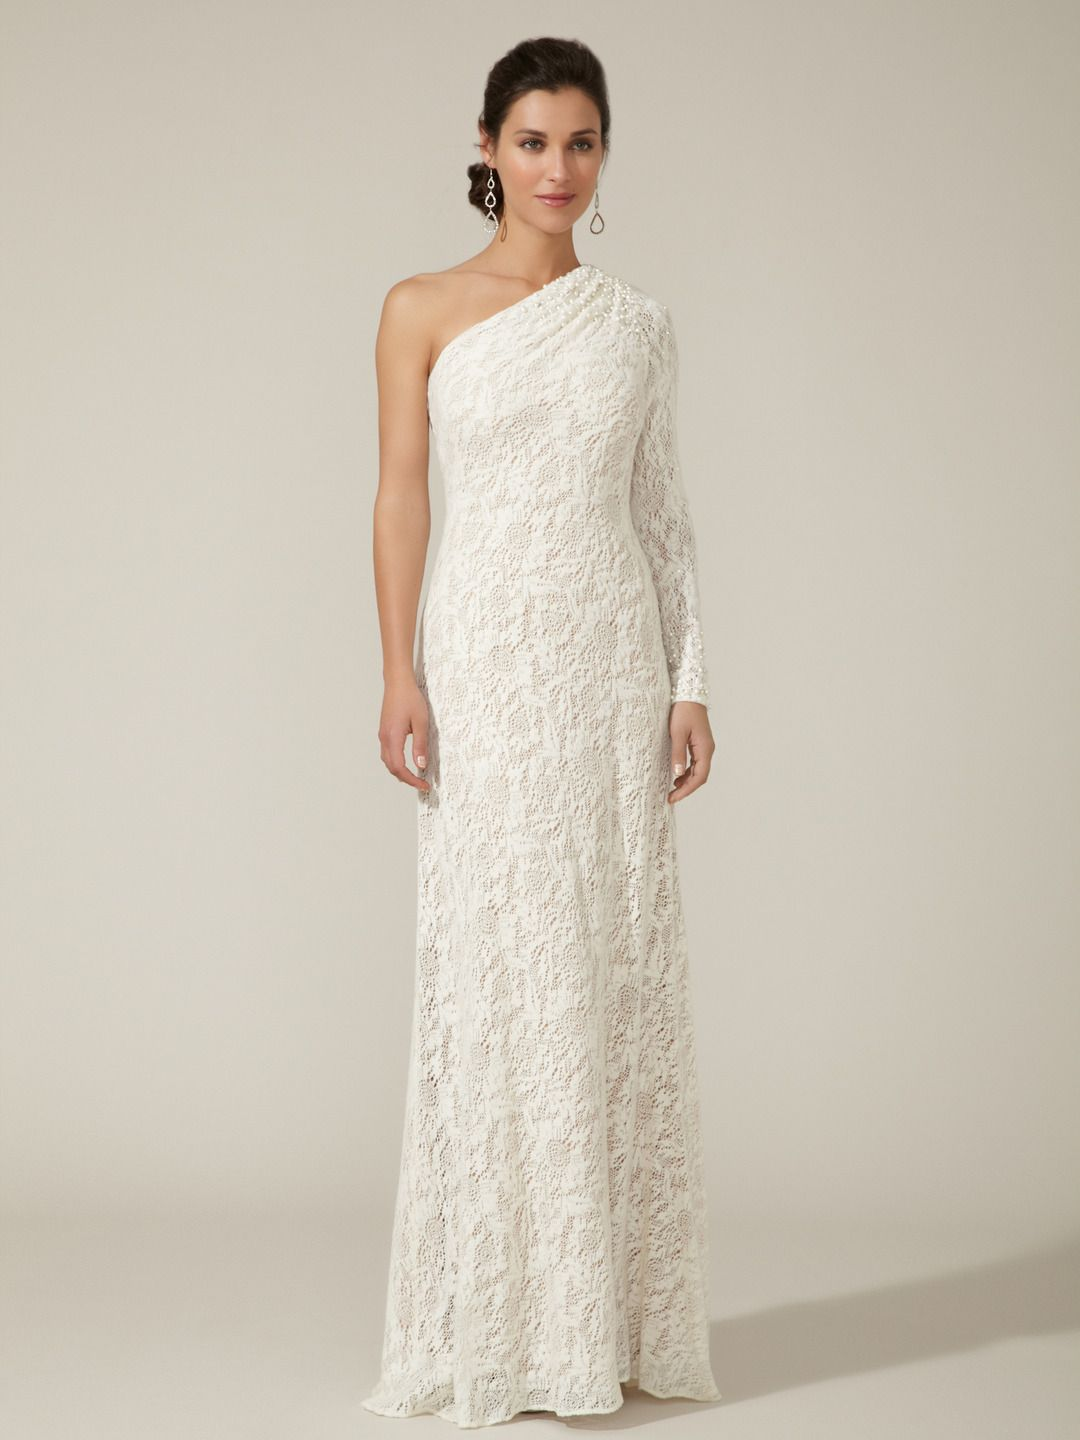 Knit Crocheted Lace Gown by Theia at Gilt. shut up this